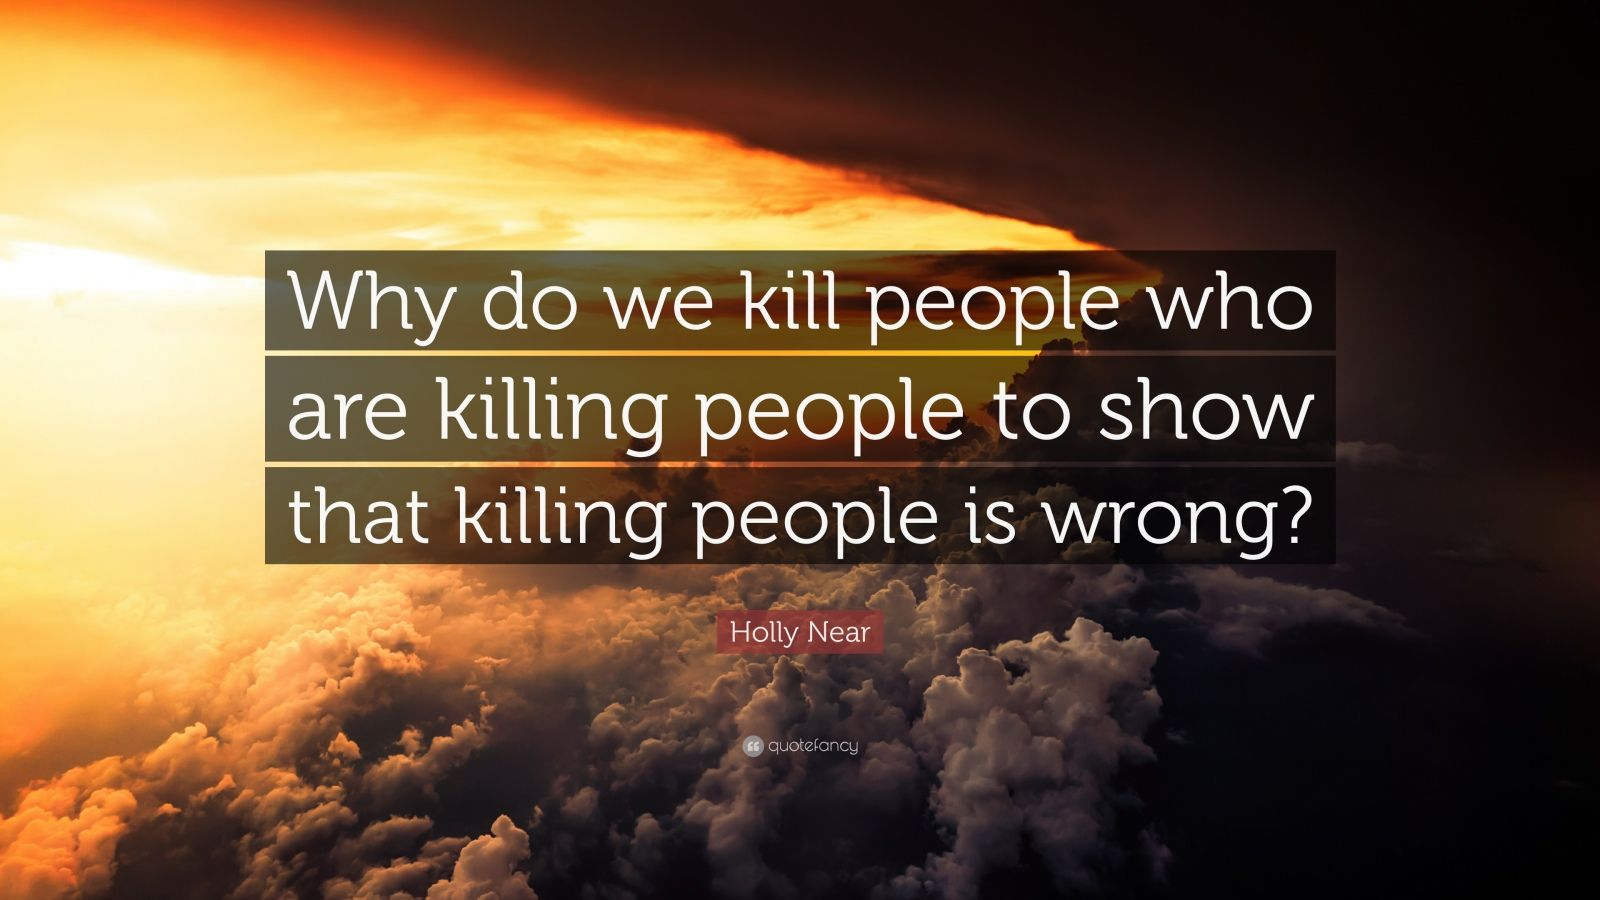 """an analysis of why do we kill people who kill people to show that killing people is wrong Why do i want to kill people we could say that killing people is wrong for many different reasons but you wont find many """"why is it wrong to kill people."""